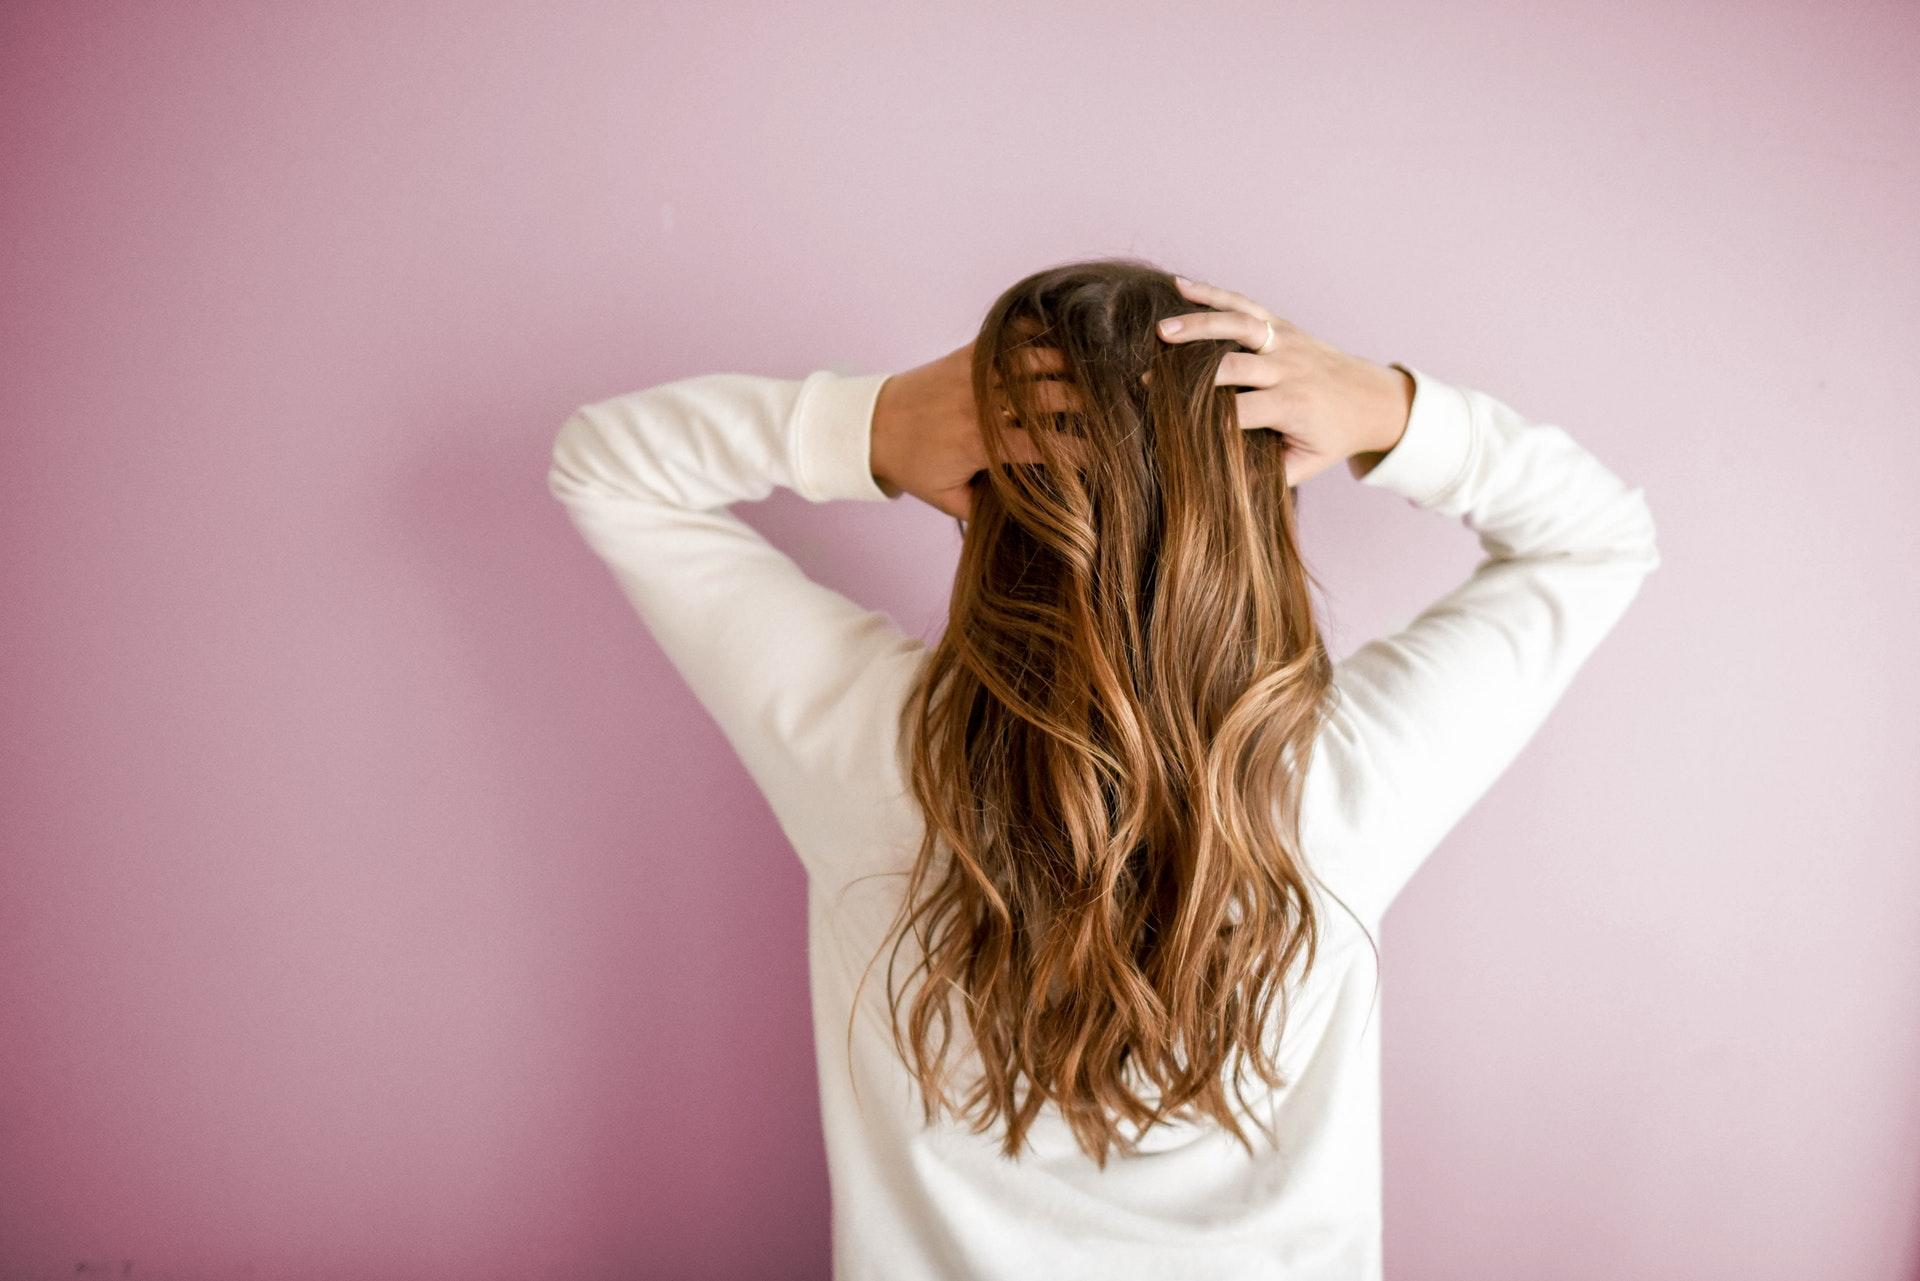 Hair Care: THIS is the Correct Way to Wash Your Hair